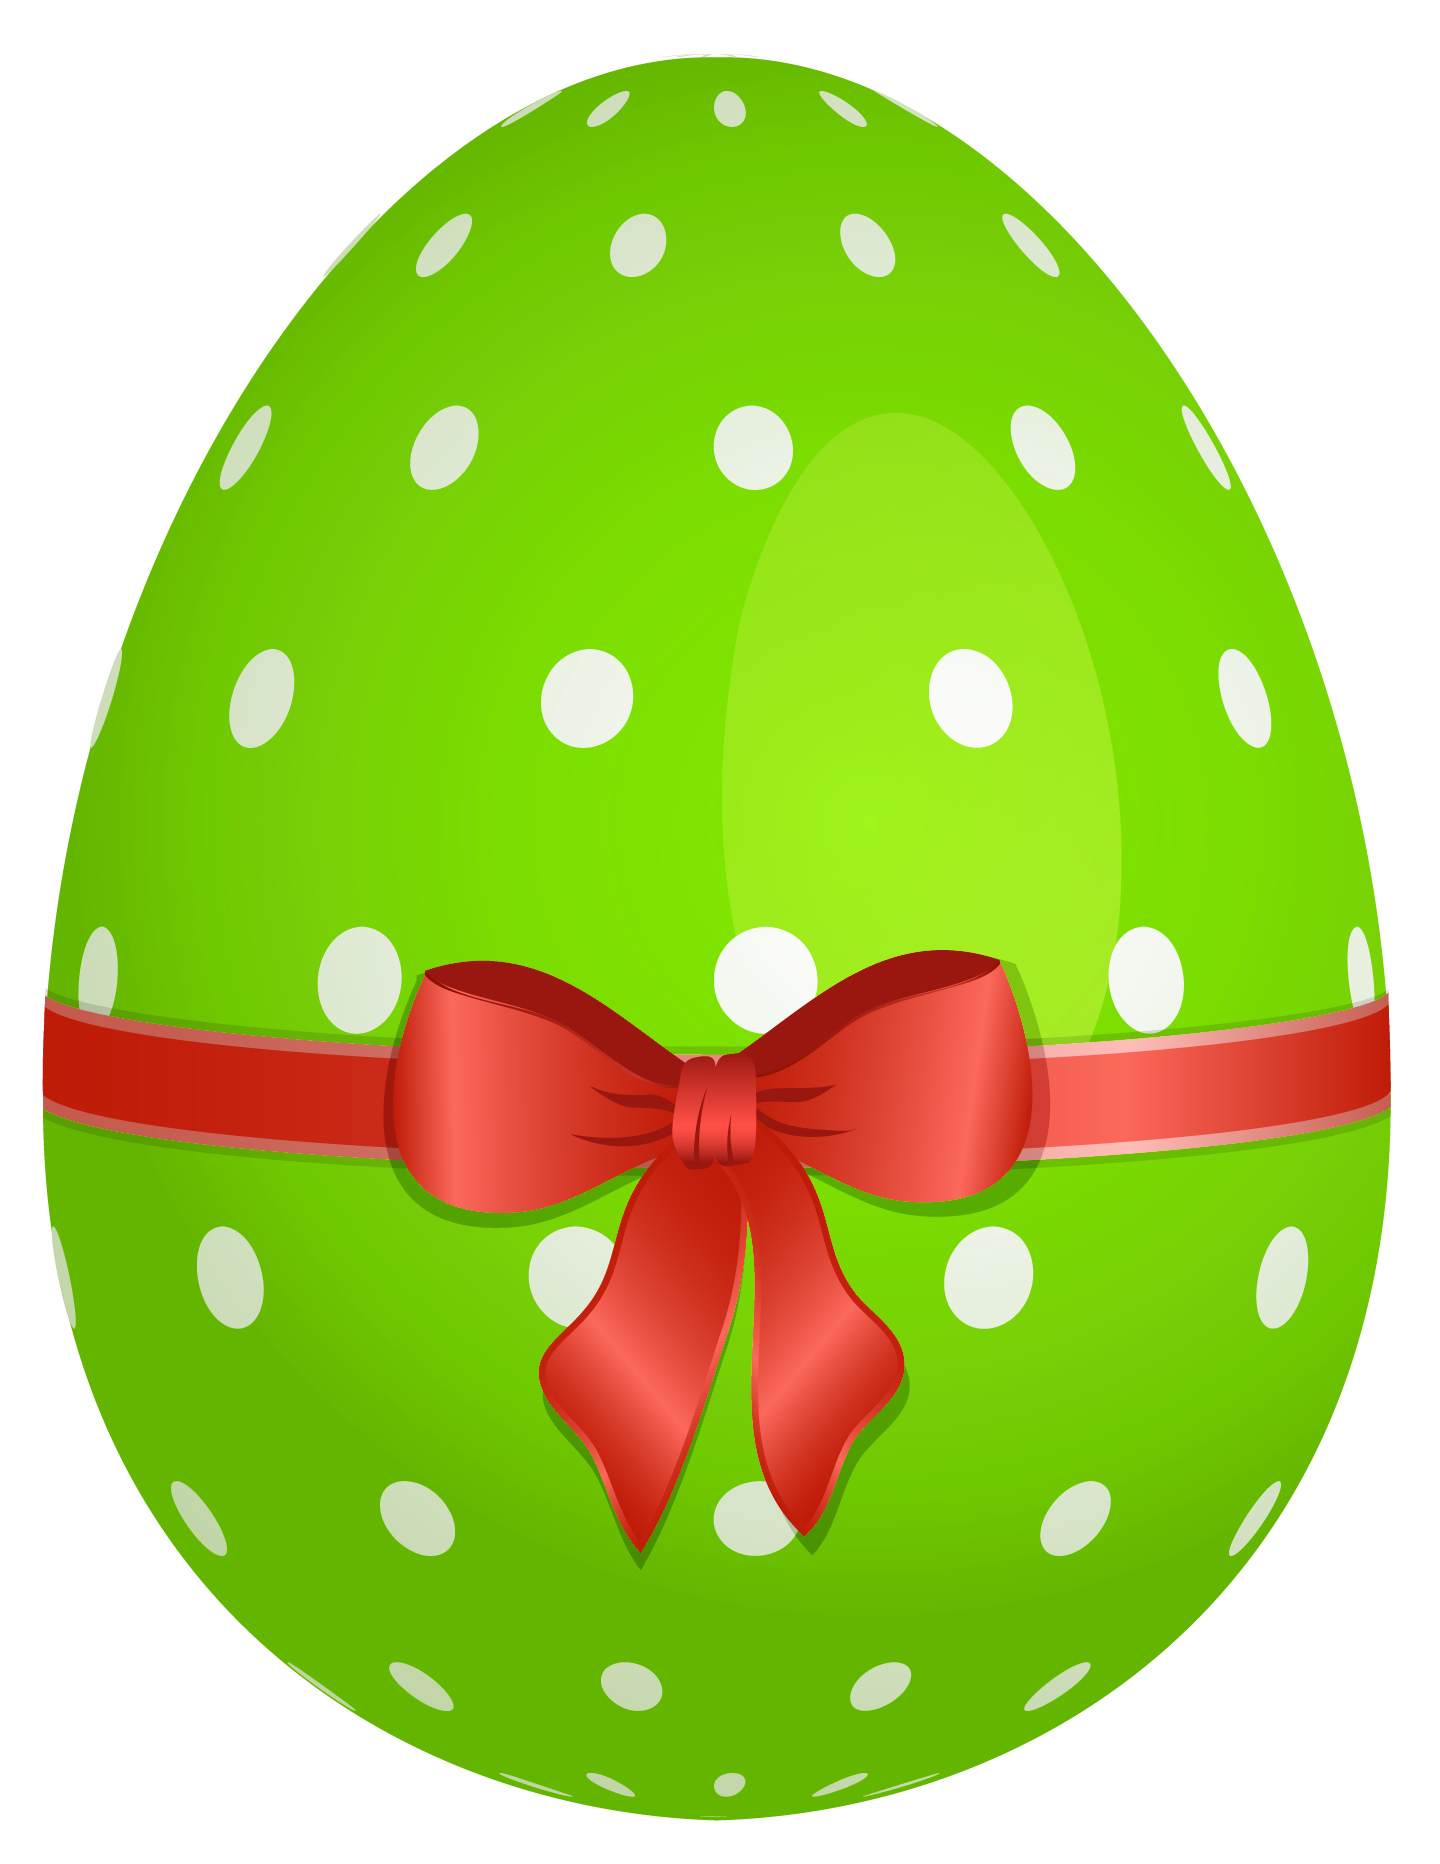 free download microsoft gallery easter eggs clipart for your creation  [ 1440 x 1864 Pixel ]